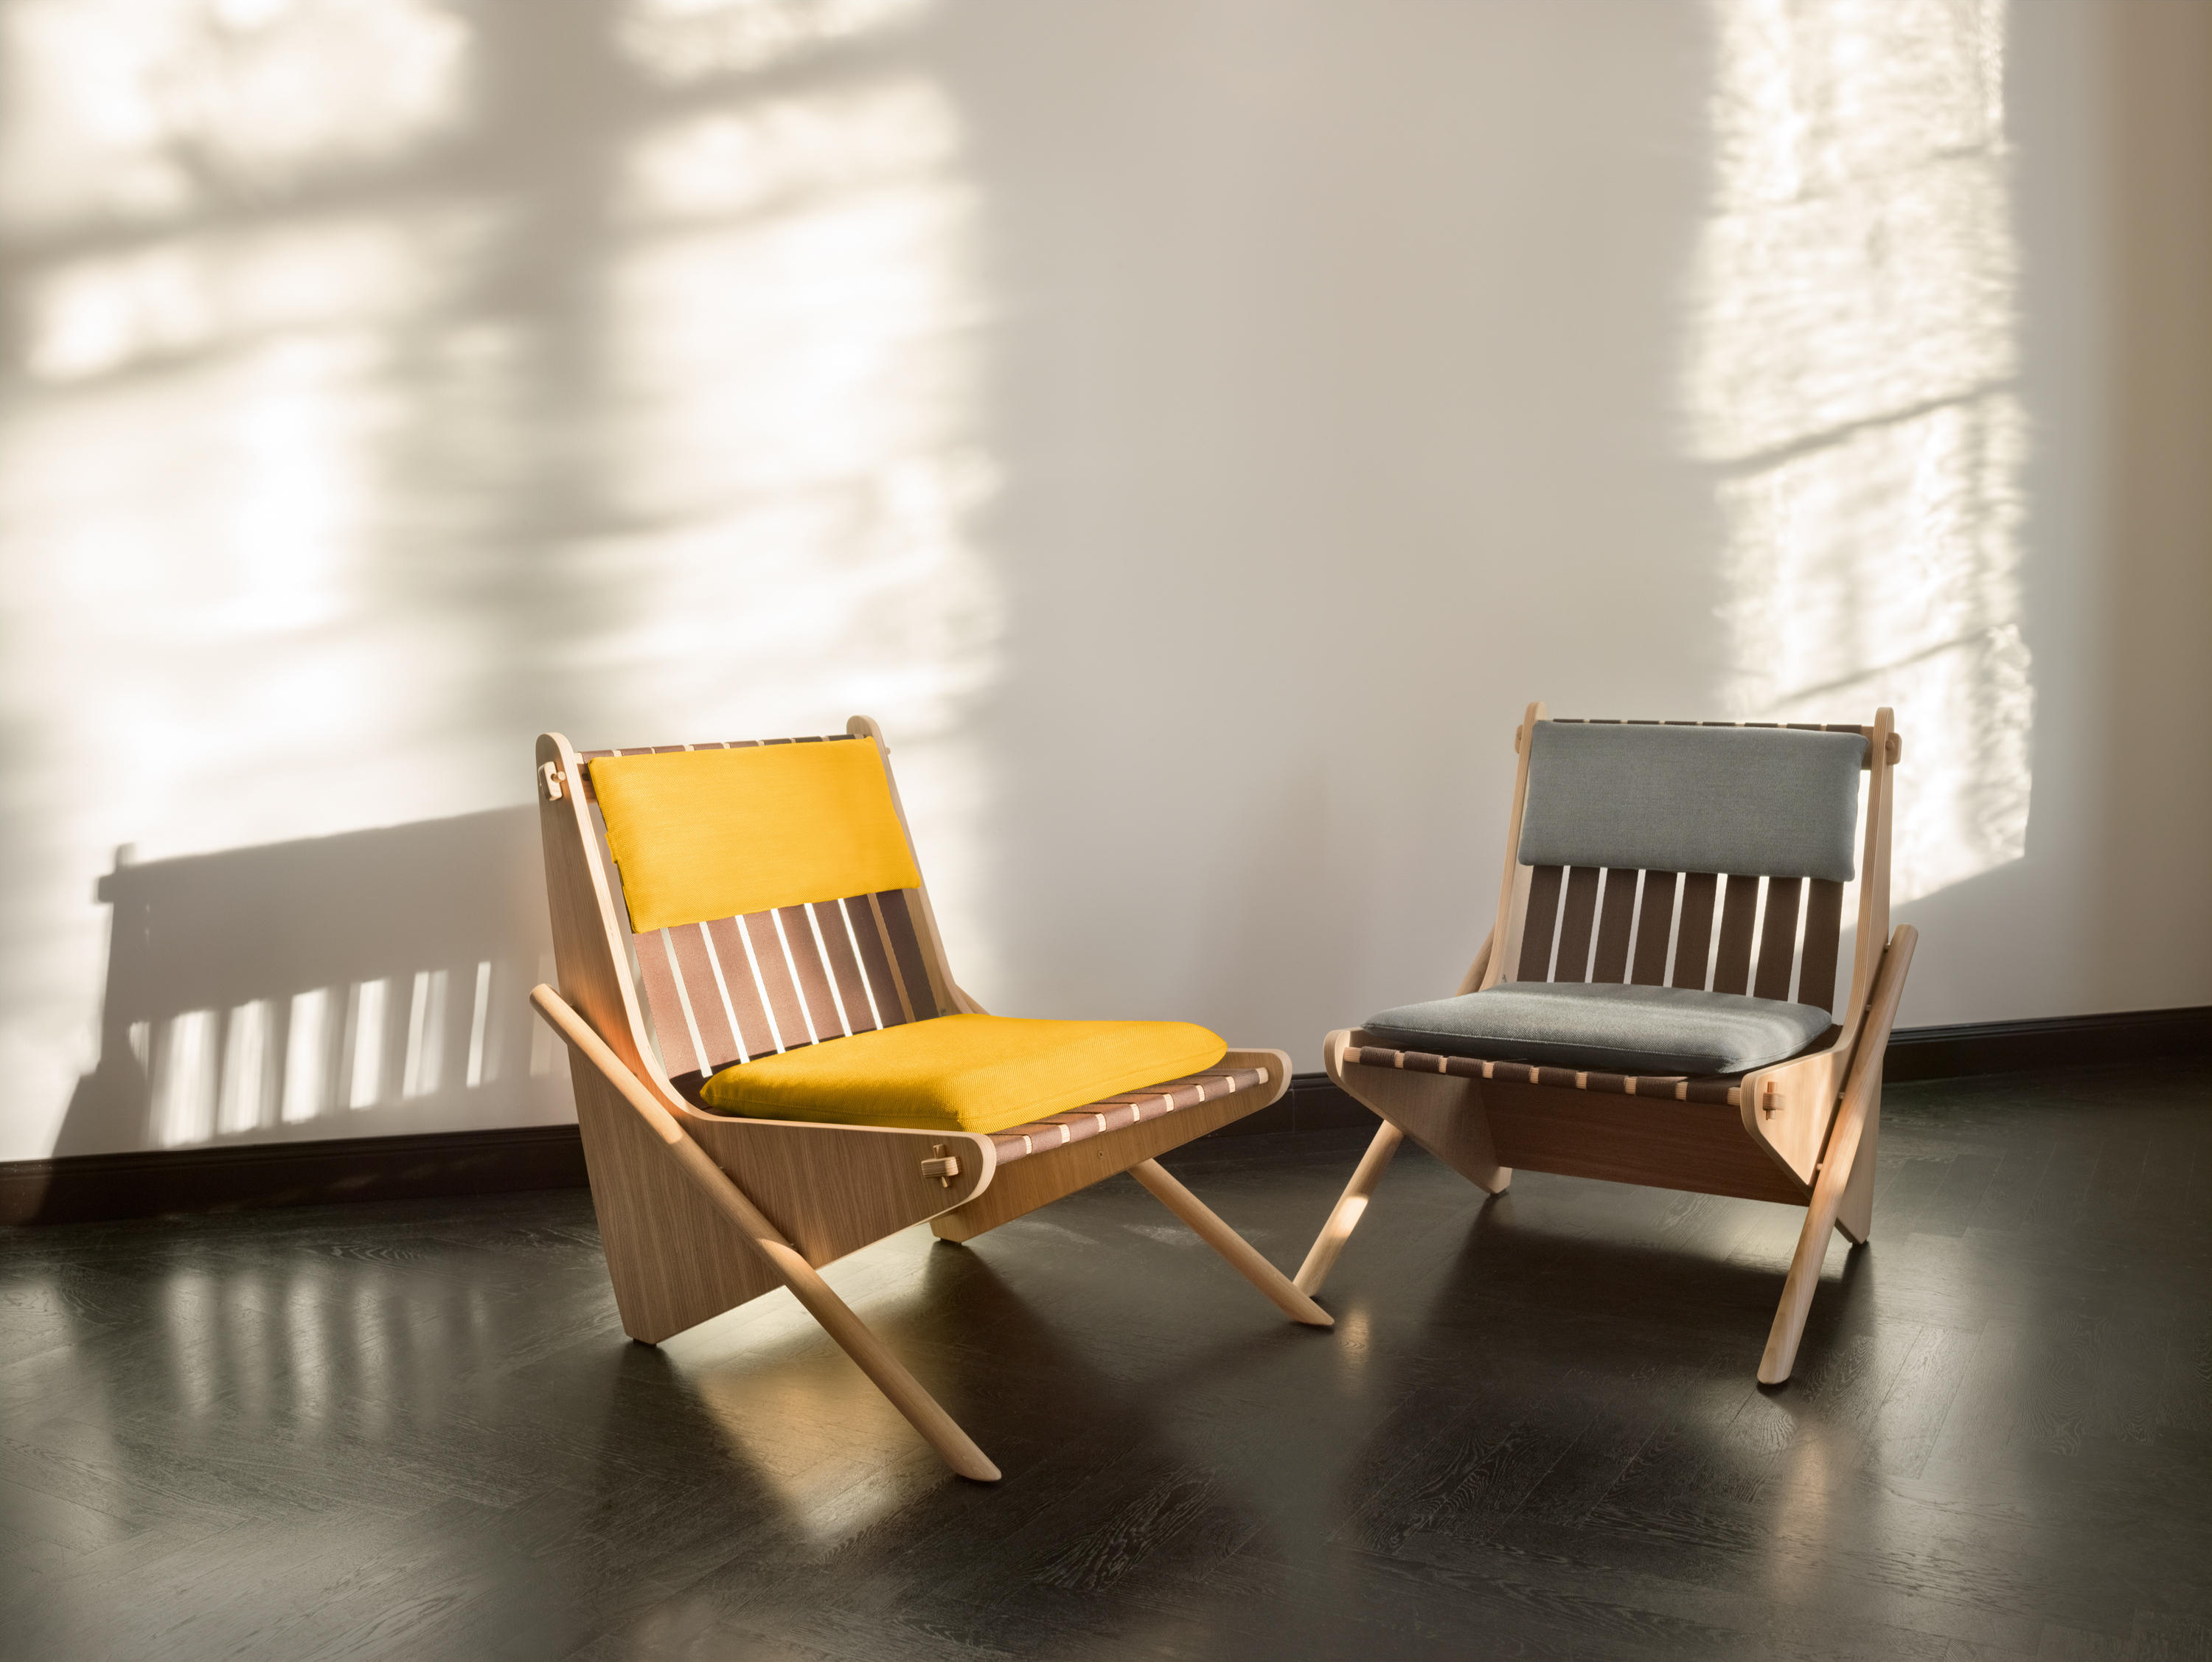 Boomerang chair lounge chairs from vs architonic for Chair vs chairman